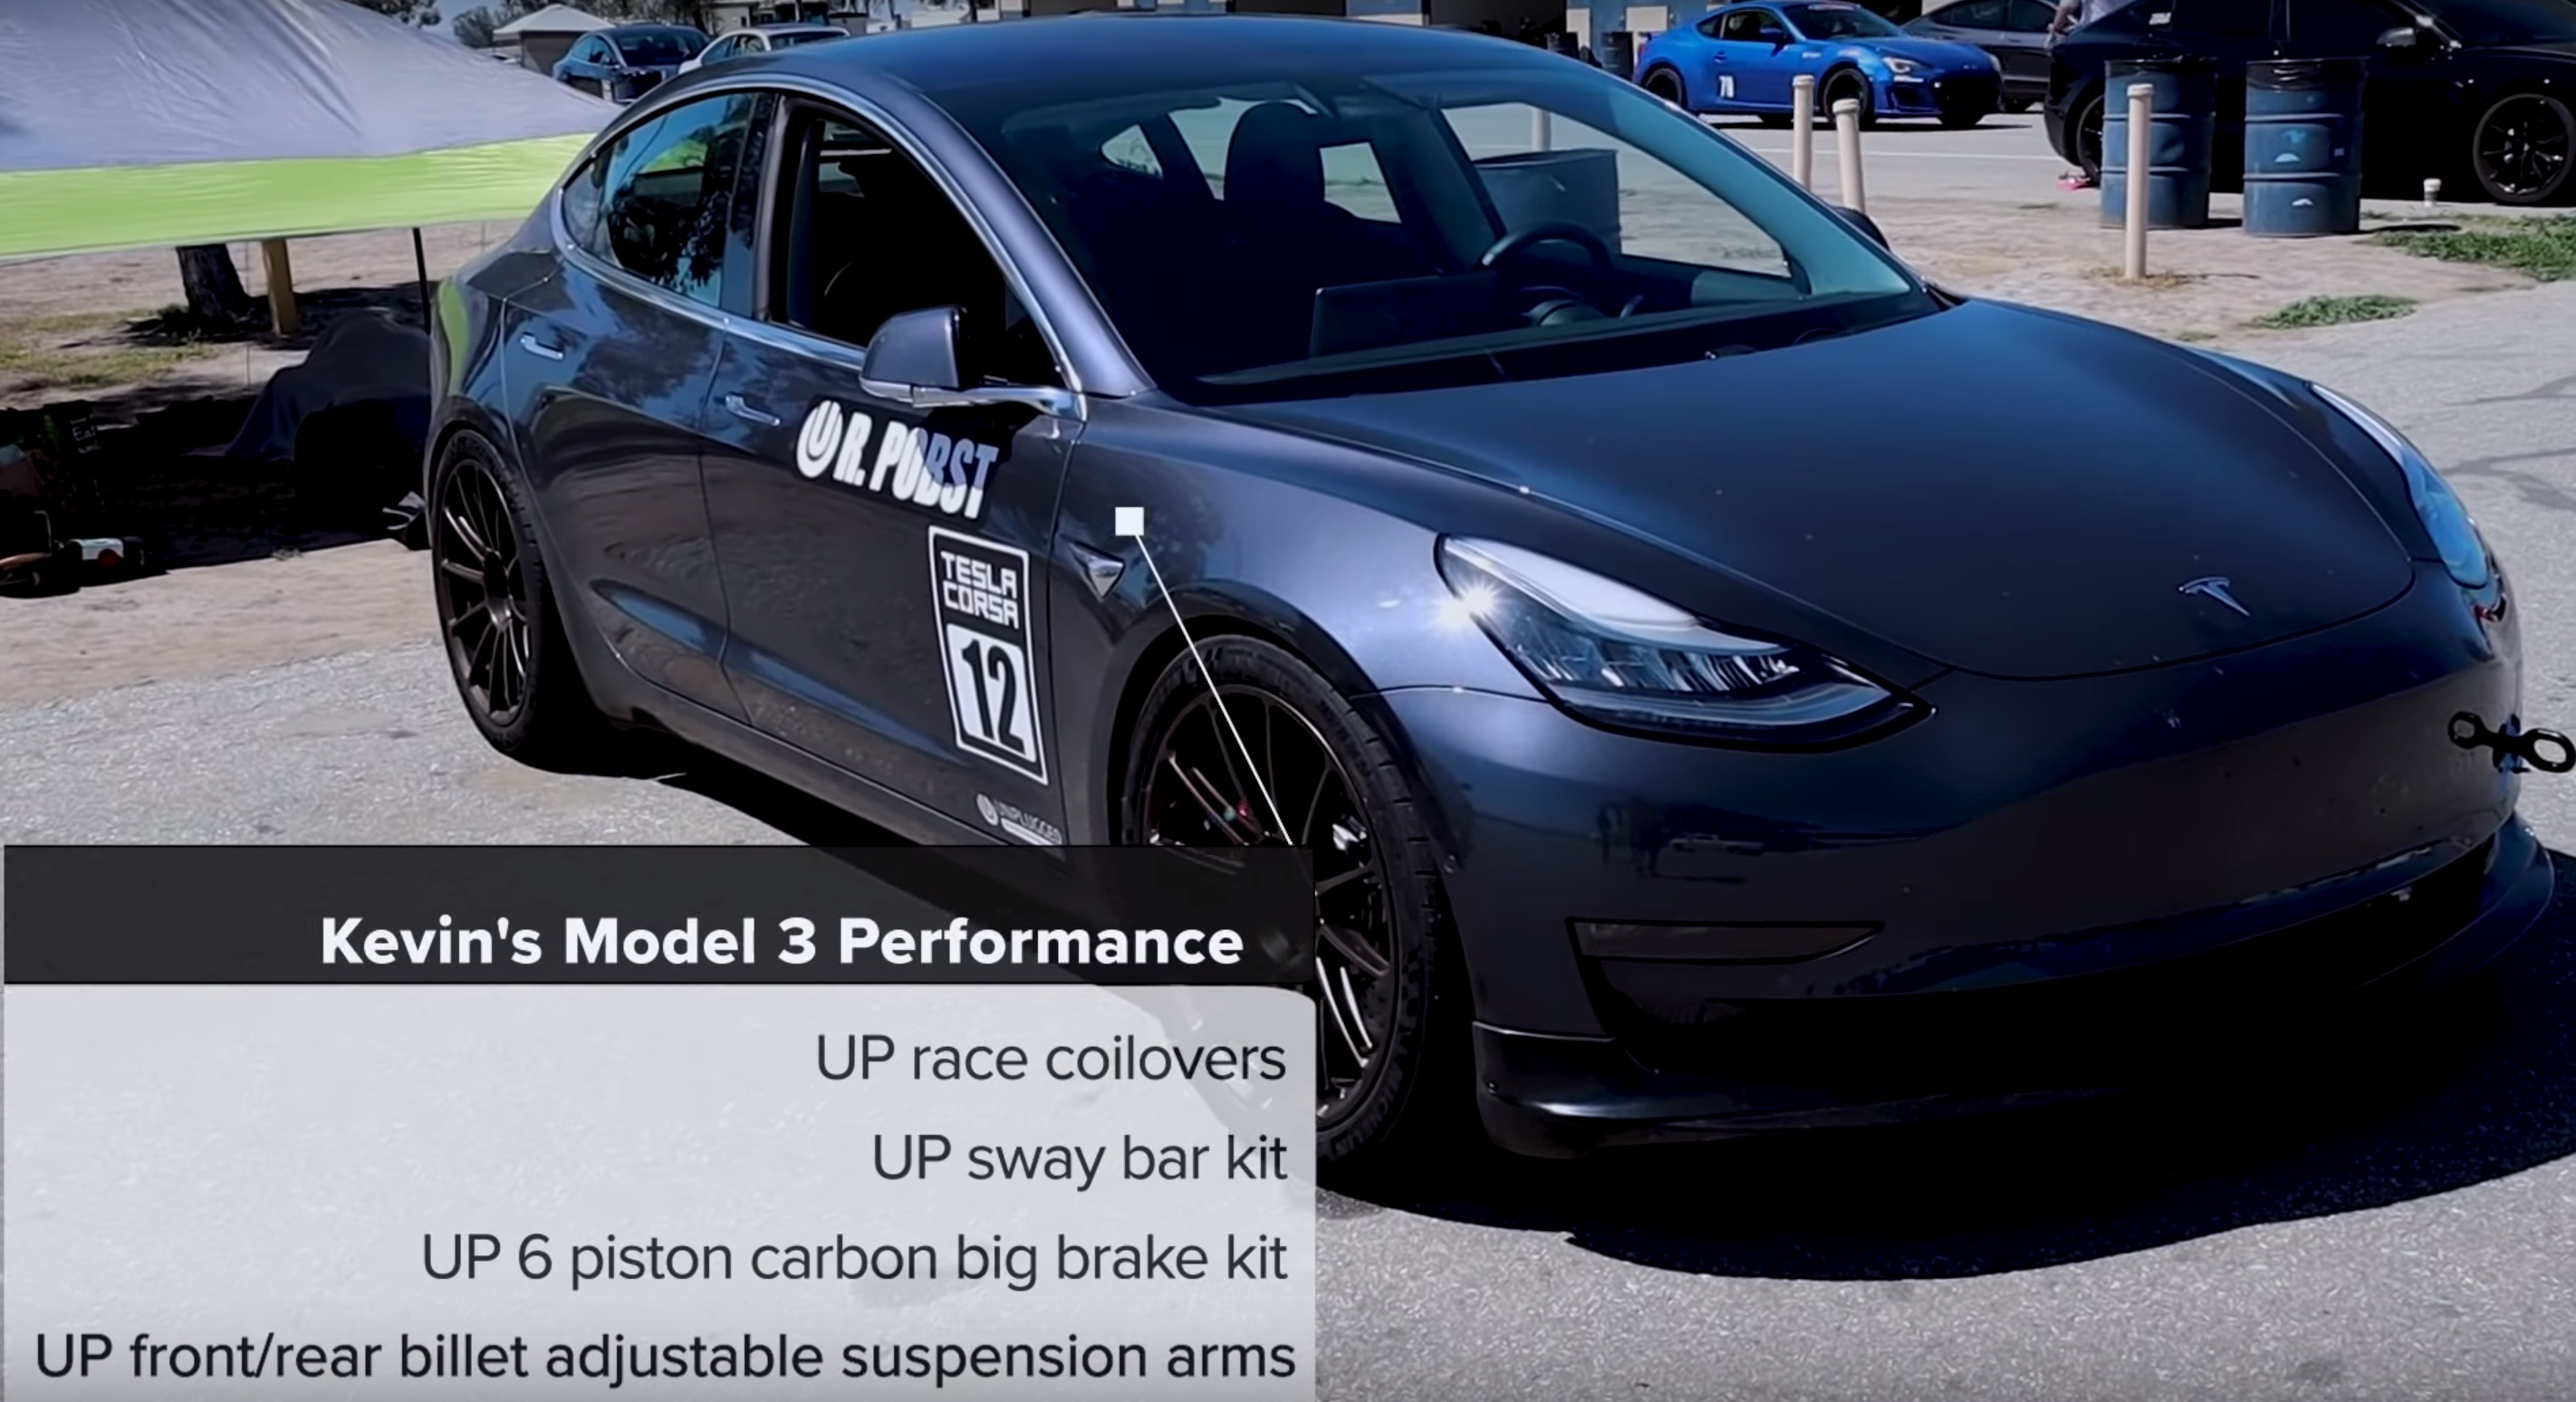 Tesla Model 3 Performance Vehicles With Upgrades Tested By Pro